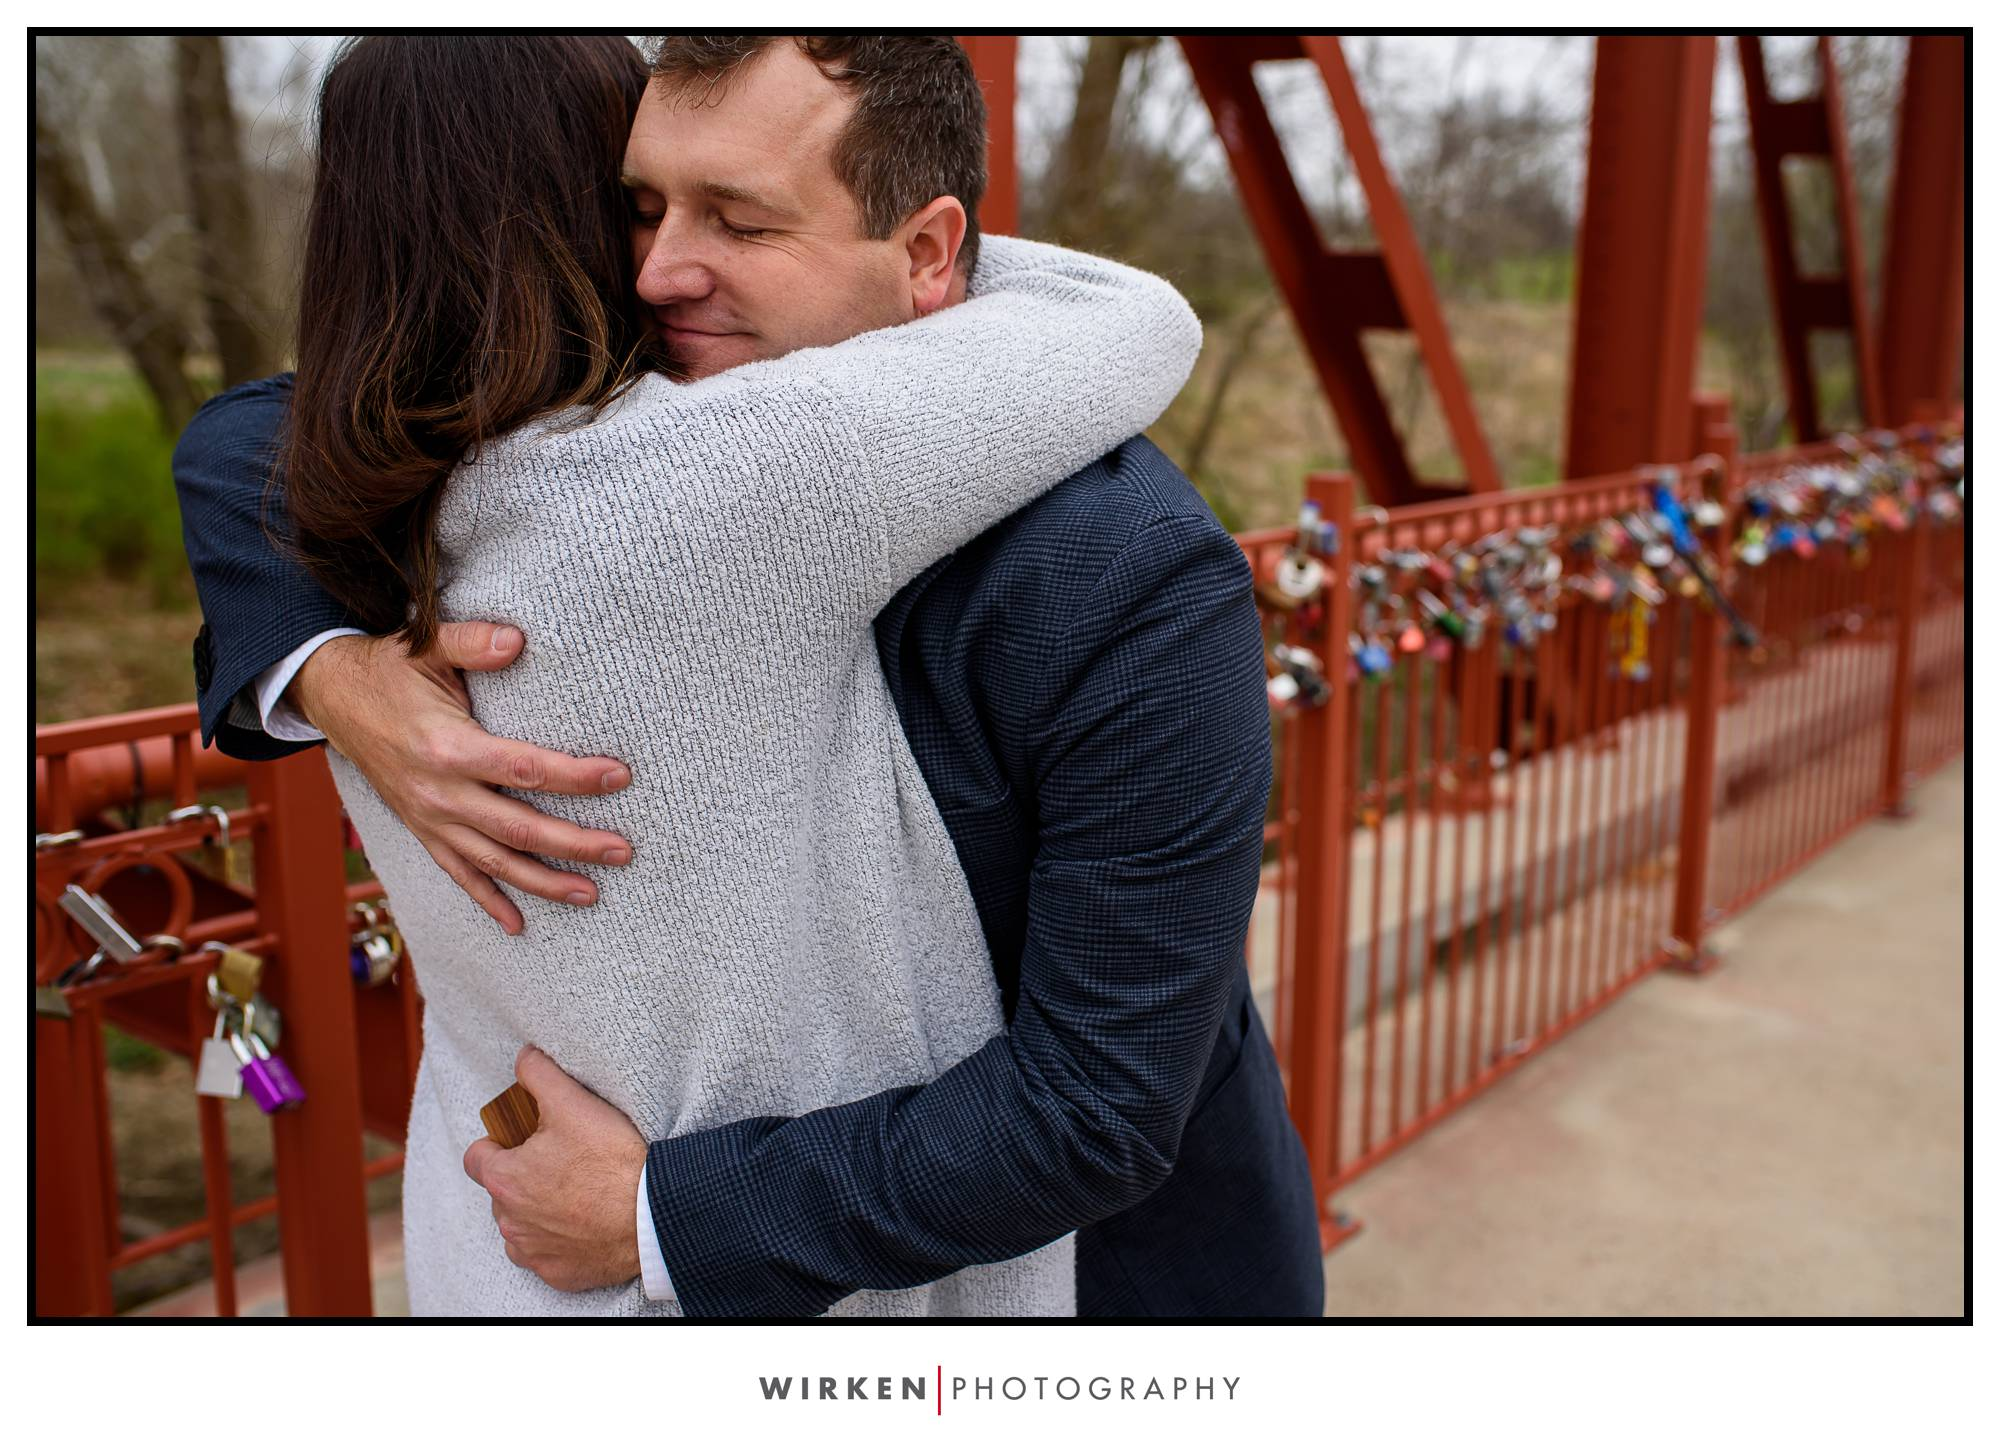 Beth says 'yes' after Brian's proposal on Love Locks Bridge in Kansas City.